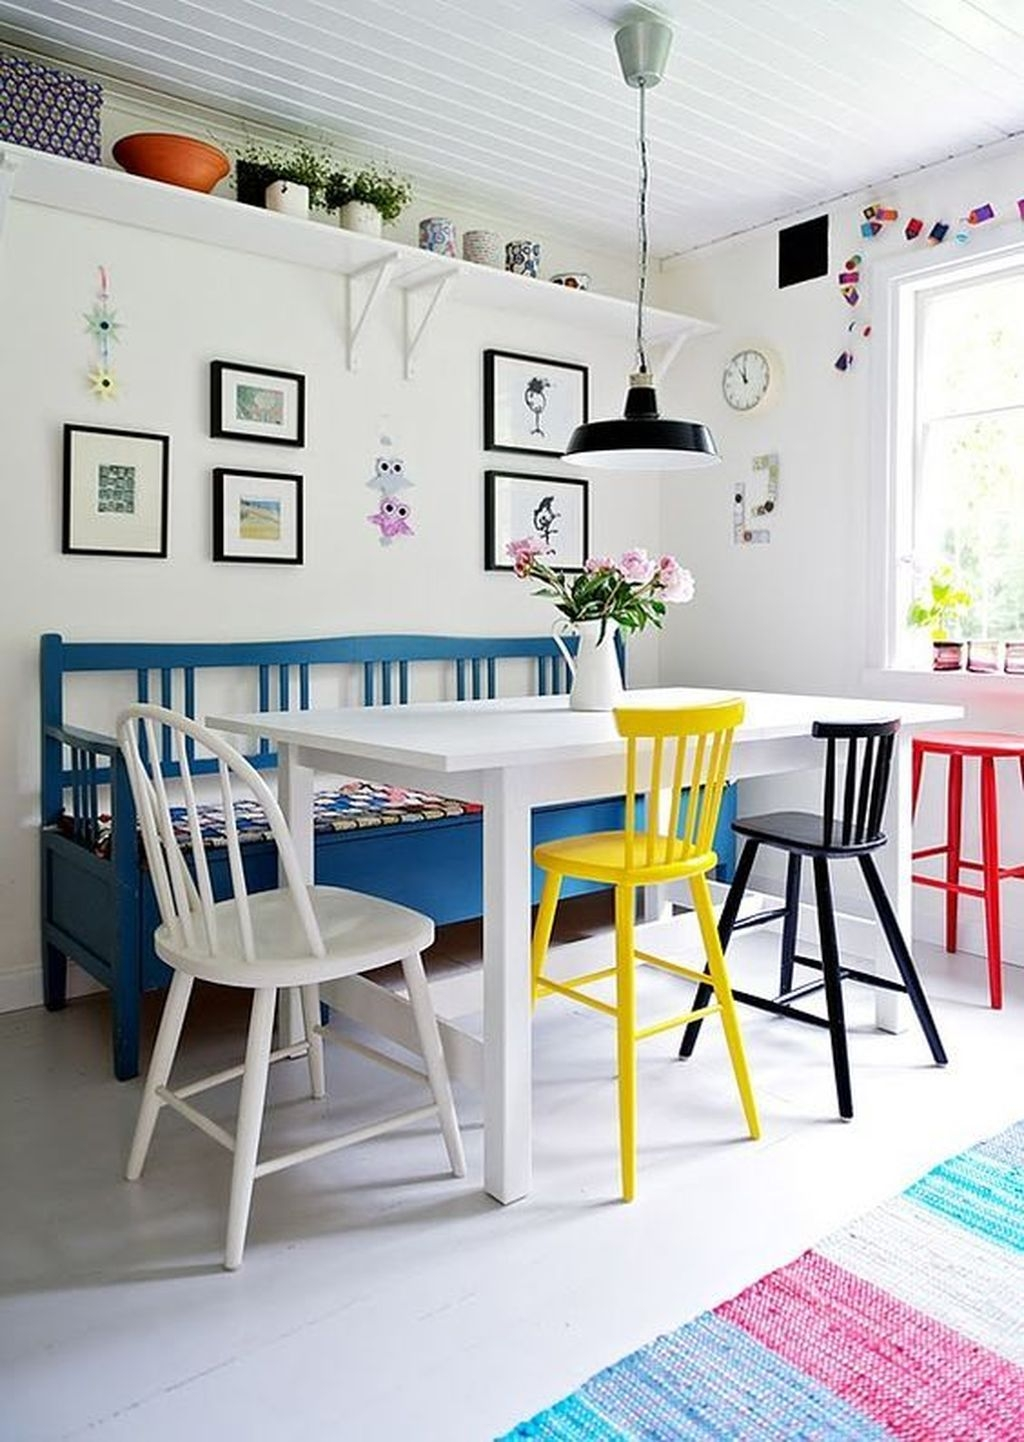 Stunning Dining Room Design Ideas With Multicolored Chairs20